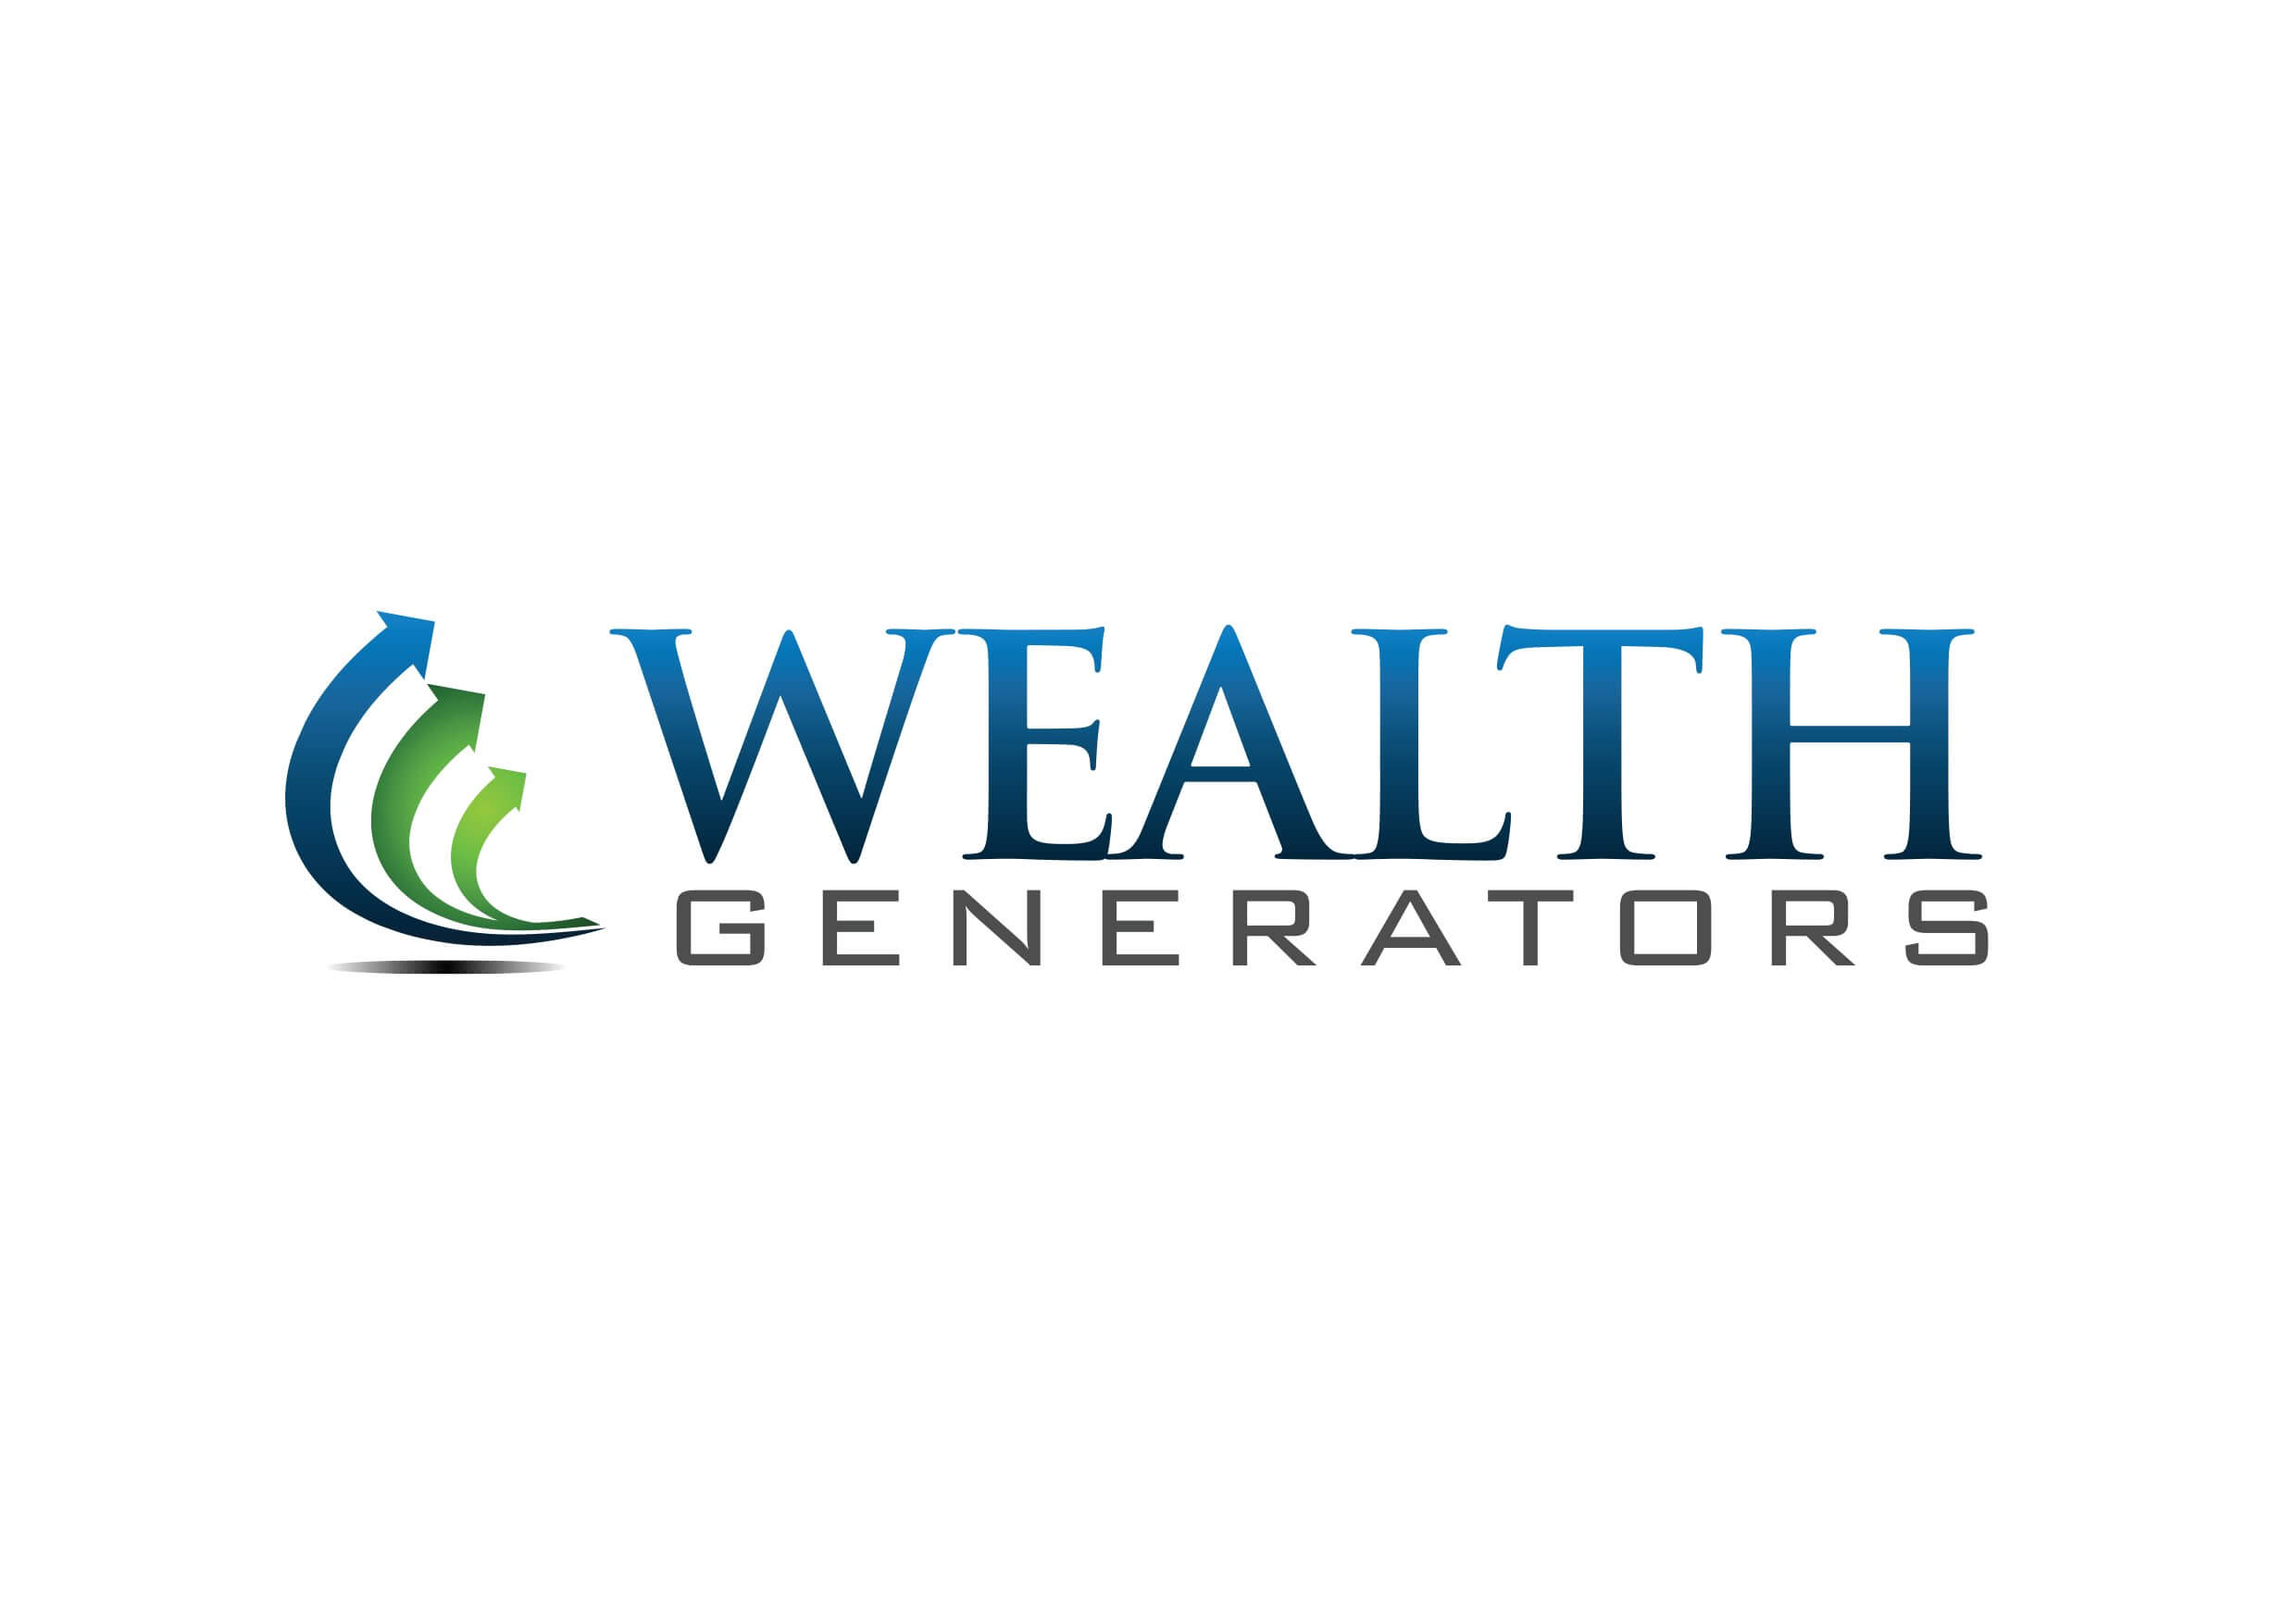 wealth generators, wealth generators scam, wealth generators erfahrungen, wealth generators review, wealth generators wiki, wealth generators germany, wealth generators seriös, wealth generators gem, wealth generators algo pack, wealth generators compensation plan, wealth generators deutschland, wealth generators app, wealth generators trade alerts, wealth generators bonus plan, wealth generators blog, wealth generators back office, wealth generators Geld zurück, wealth generators.com, wealth generators compensation plan pdf, wealth generators deutsch erfahrungen, wealth generators erfahrungen deutsch, wealth generators forex, wealth generators facebook, wealth generators illegal, wealth generators meinungen, wealth generators mlm, wealth generators mlm review, wealth generators network marketing, wealth generators support, wealth generators schneeball, wealth generator system, wealth generators trading, wealth generators training, wealth generators test, wealth generators vergütungsplan, wealth generators wikipedia, wealth generators Login, wealth generators Anmeldung